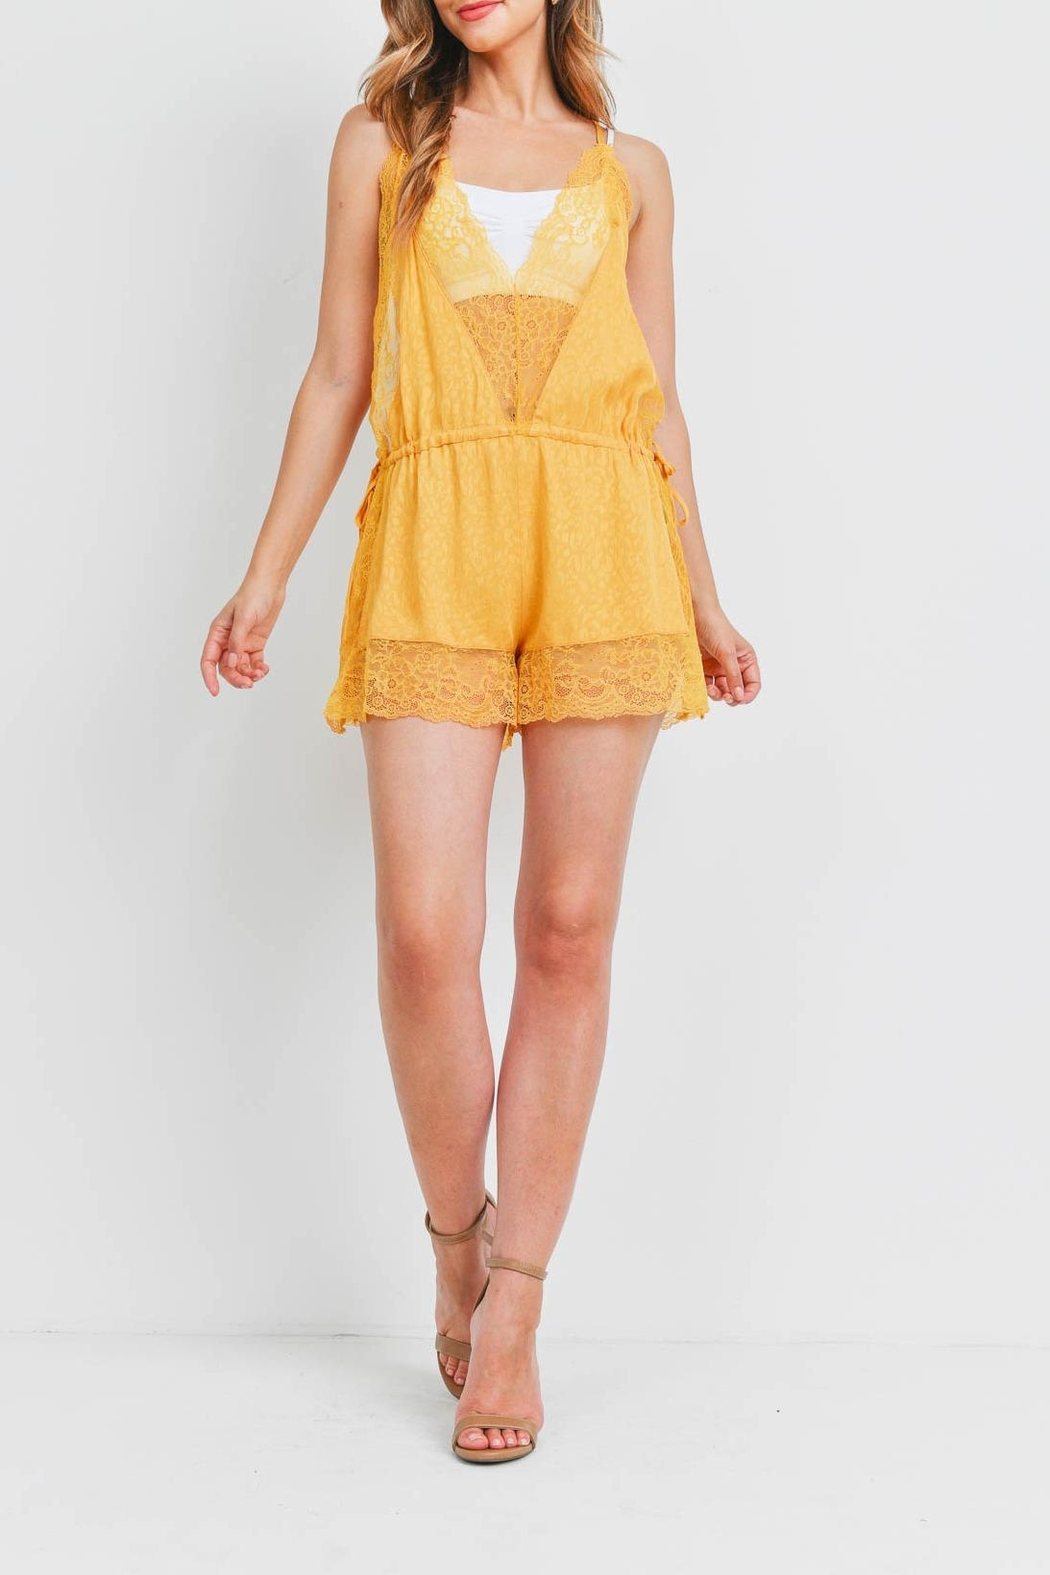 Riah Fashion Yellow Romper - Side Cropped Image